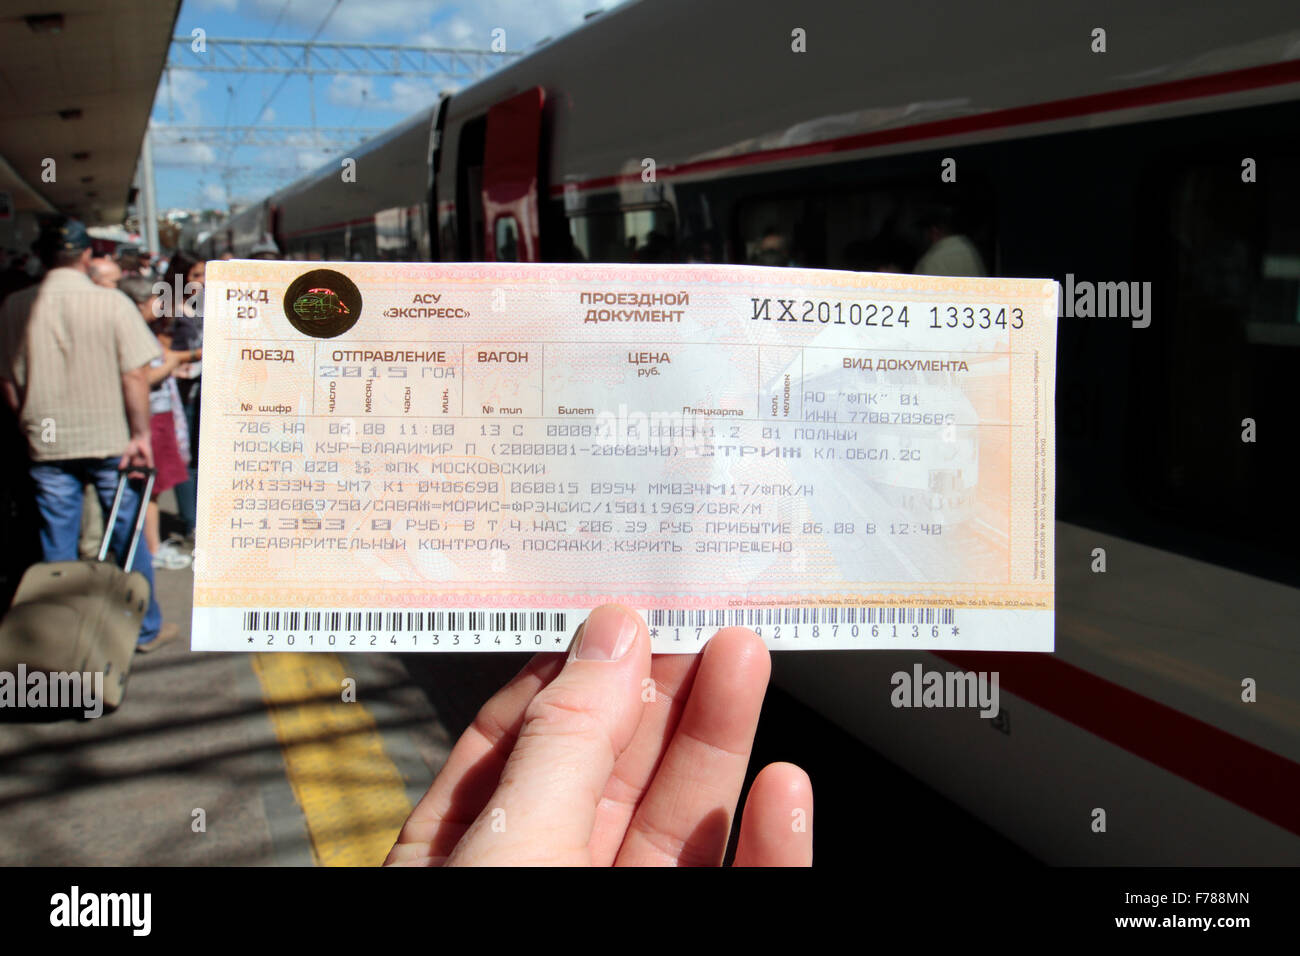 Holding a Russian long distance train ticket (for a journey between Moscow and Suzdal) in 2015. - Stock Image